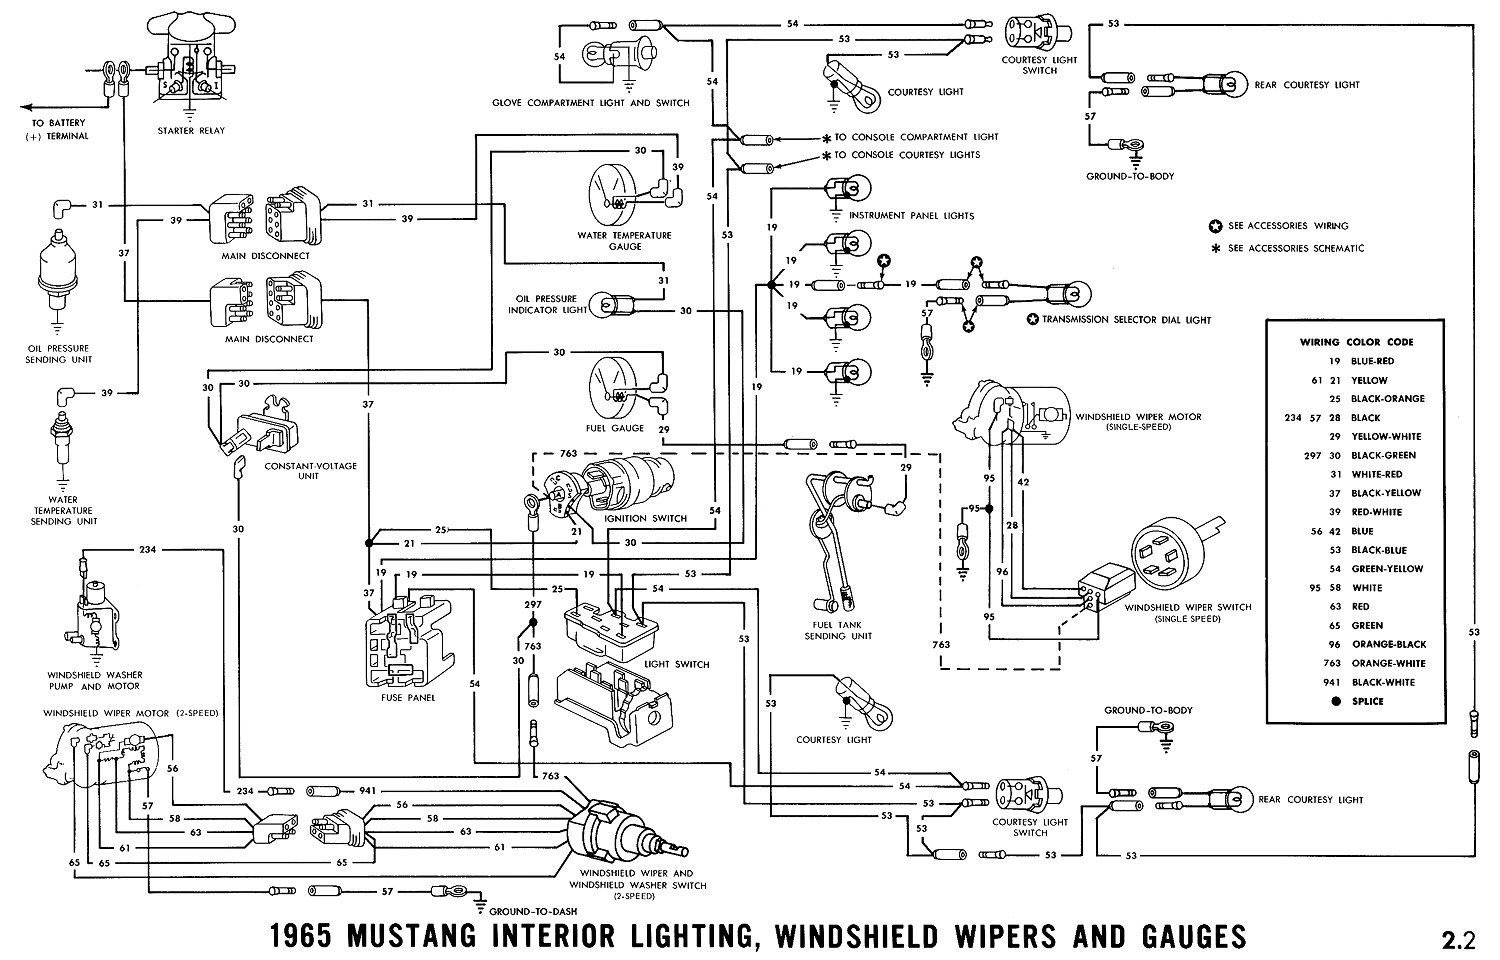 1965g 1965 mustang wiring diagrams average joe restoration mustang wiring diagrams at gsmx.co